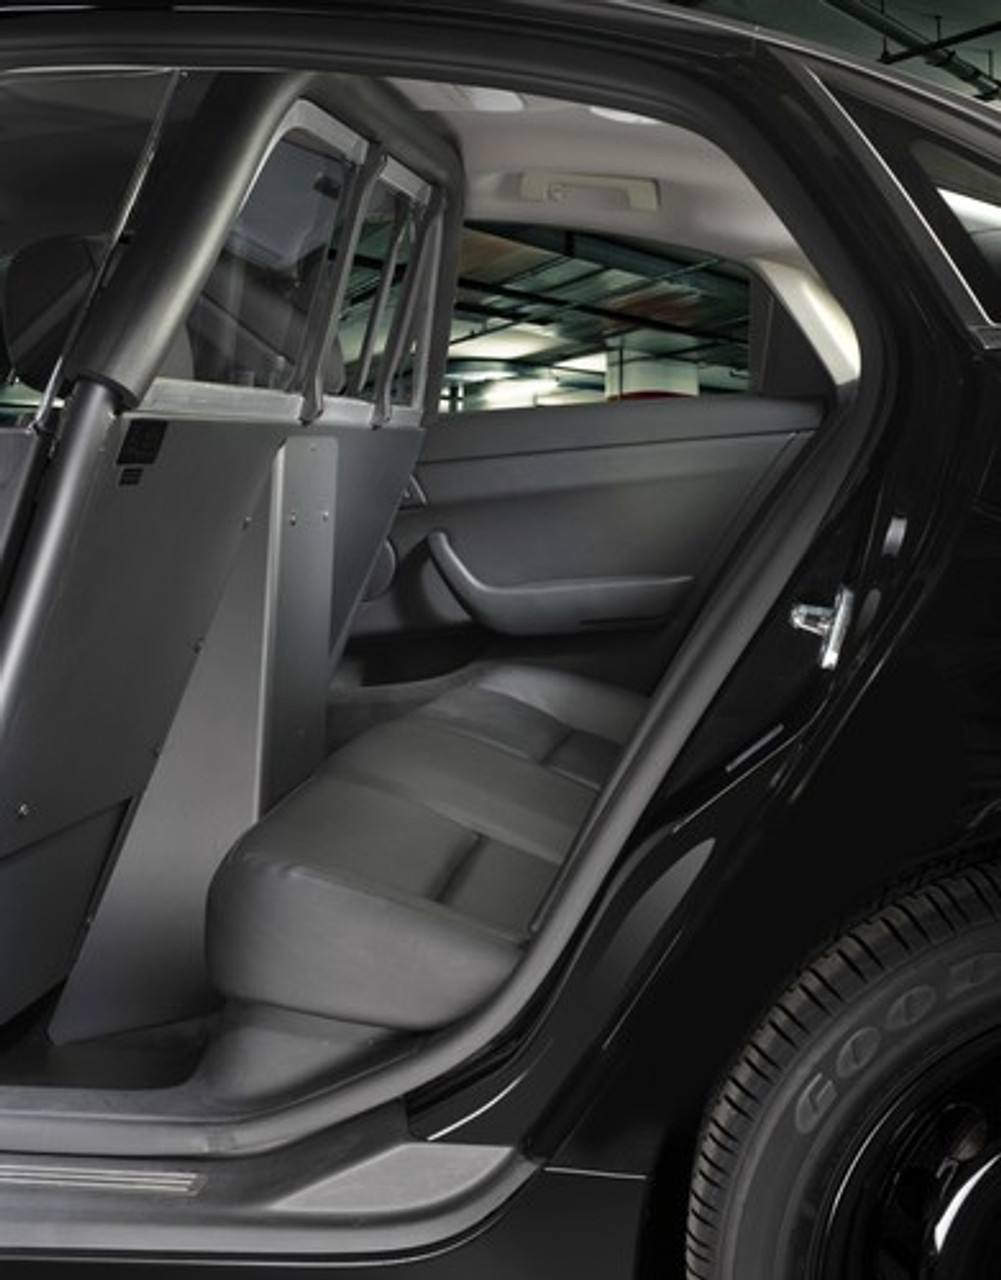 Setina Police Partition Cage with Recessed Panel for Cars SUVs Trucks and Vans for Prisoner Transport, ideal for gun rack mounting and longer consoles